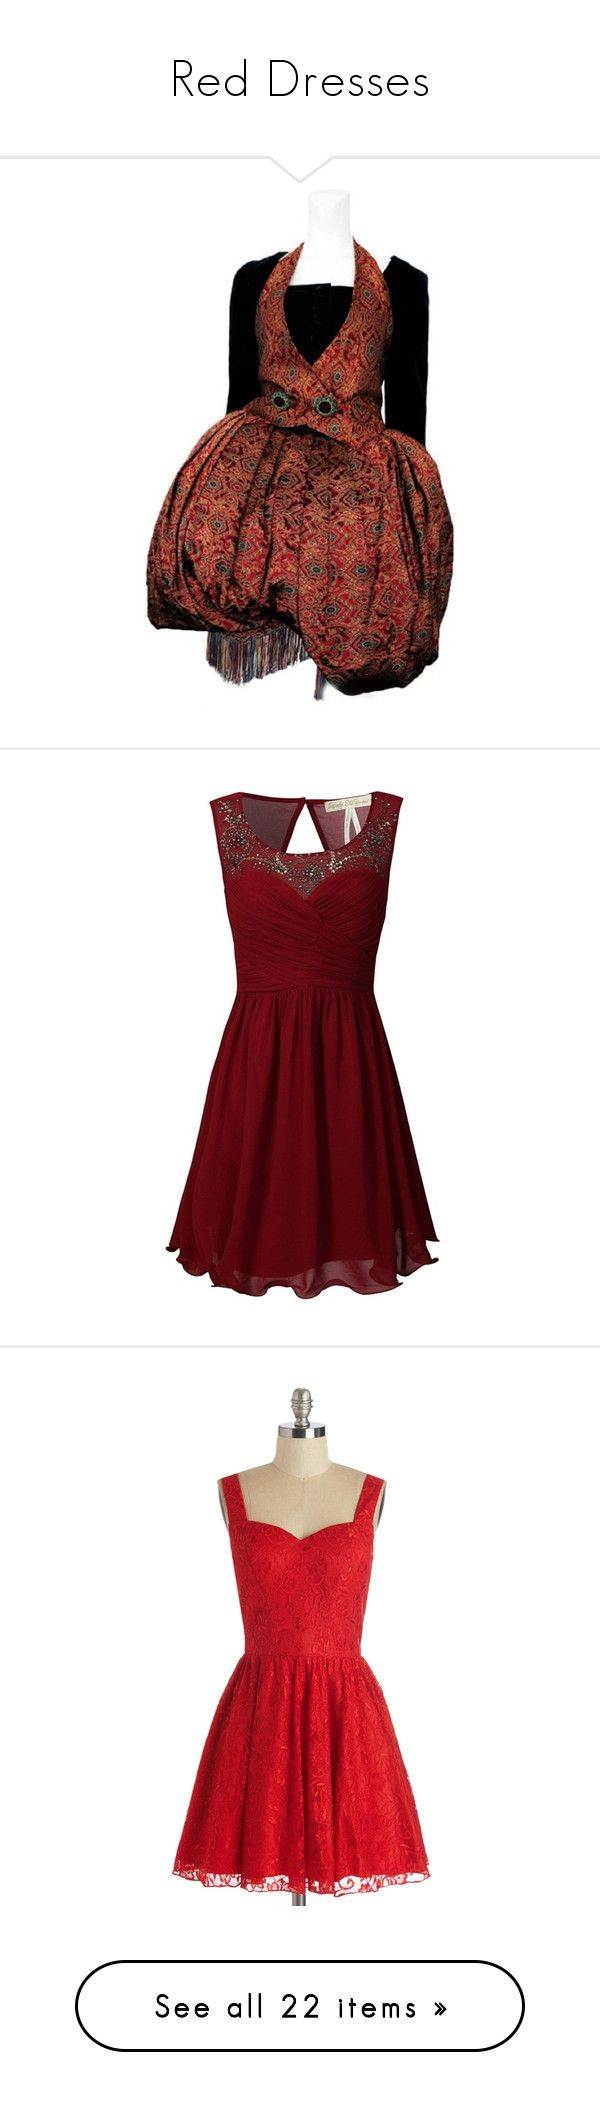 """""""Red Dresses"""" by xxbeauty4rmpainxx ❤ liked on Polyvore featuring dresses, embellished dress, red fringe dress, long sleeve dresses, fringe dress, longsleeve dress, red christmas dress, christmas dresses, red dress and christmas cocktail dresses"""